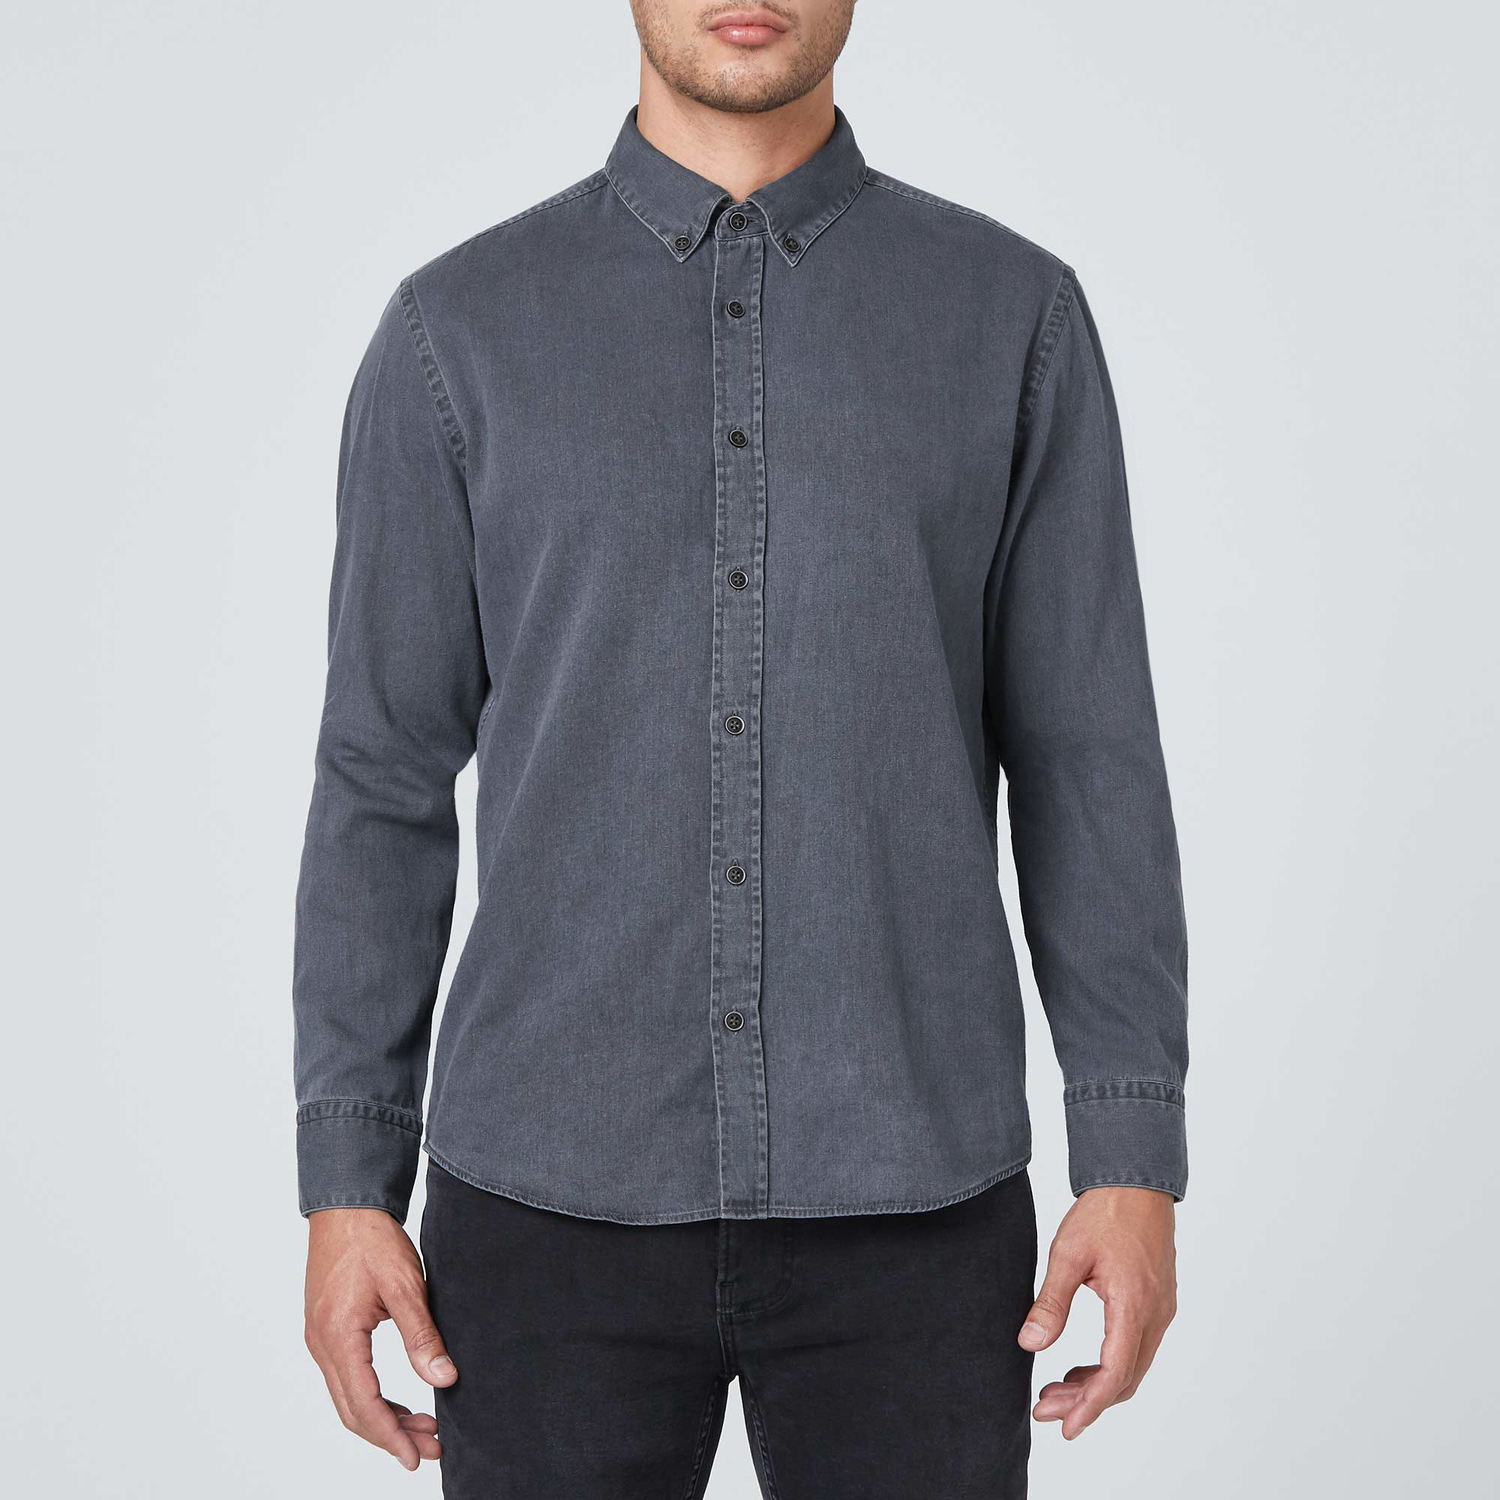 Mens Classic Button Down Shirt In Grey 79 Dstld